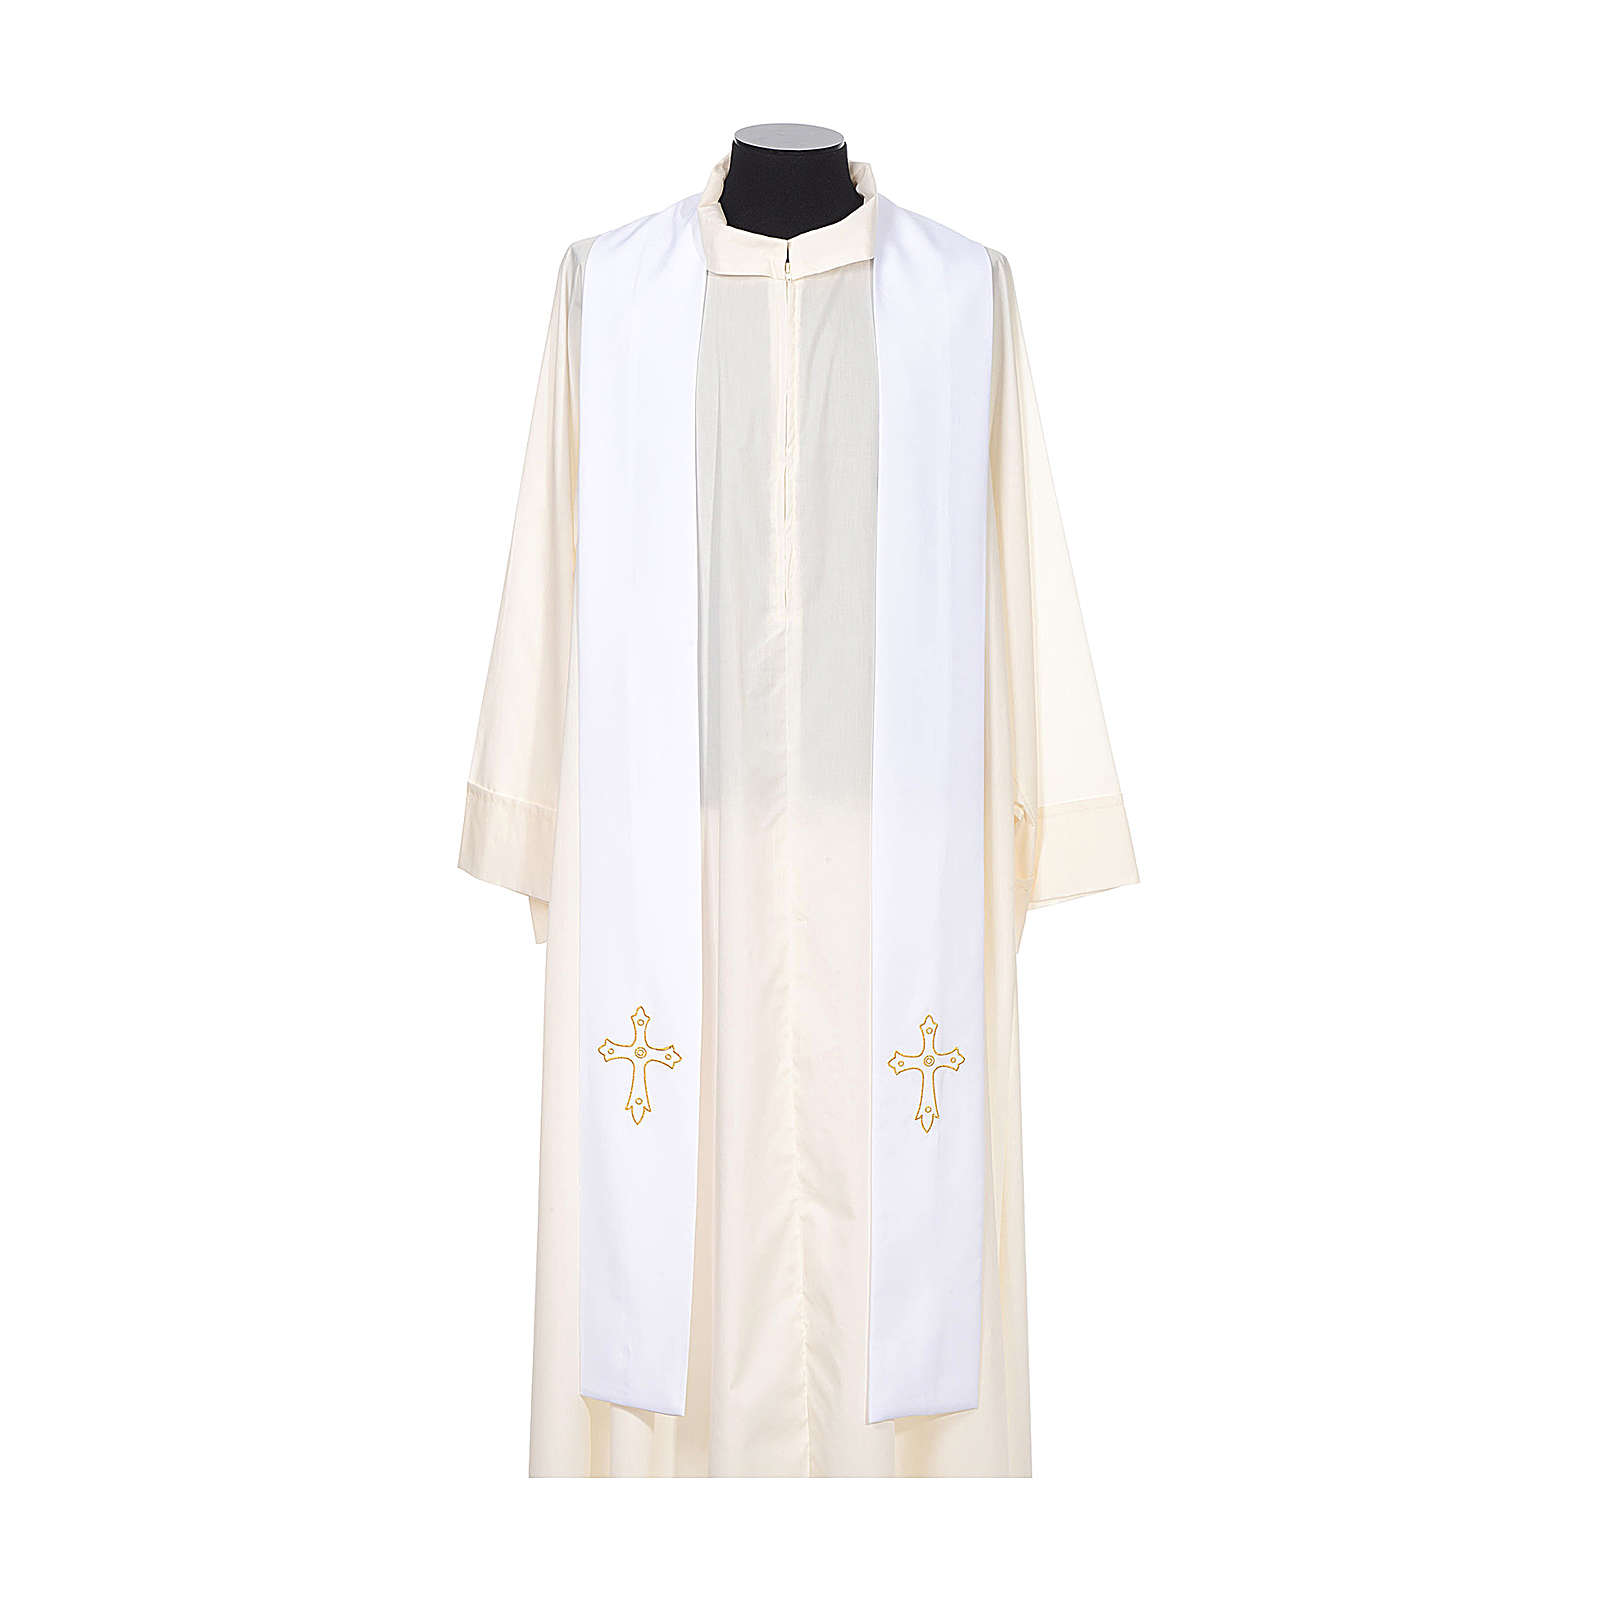 Clergy Stole with gold cross embroideren on both panels 4